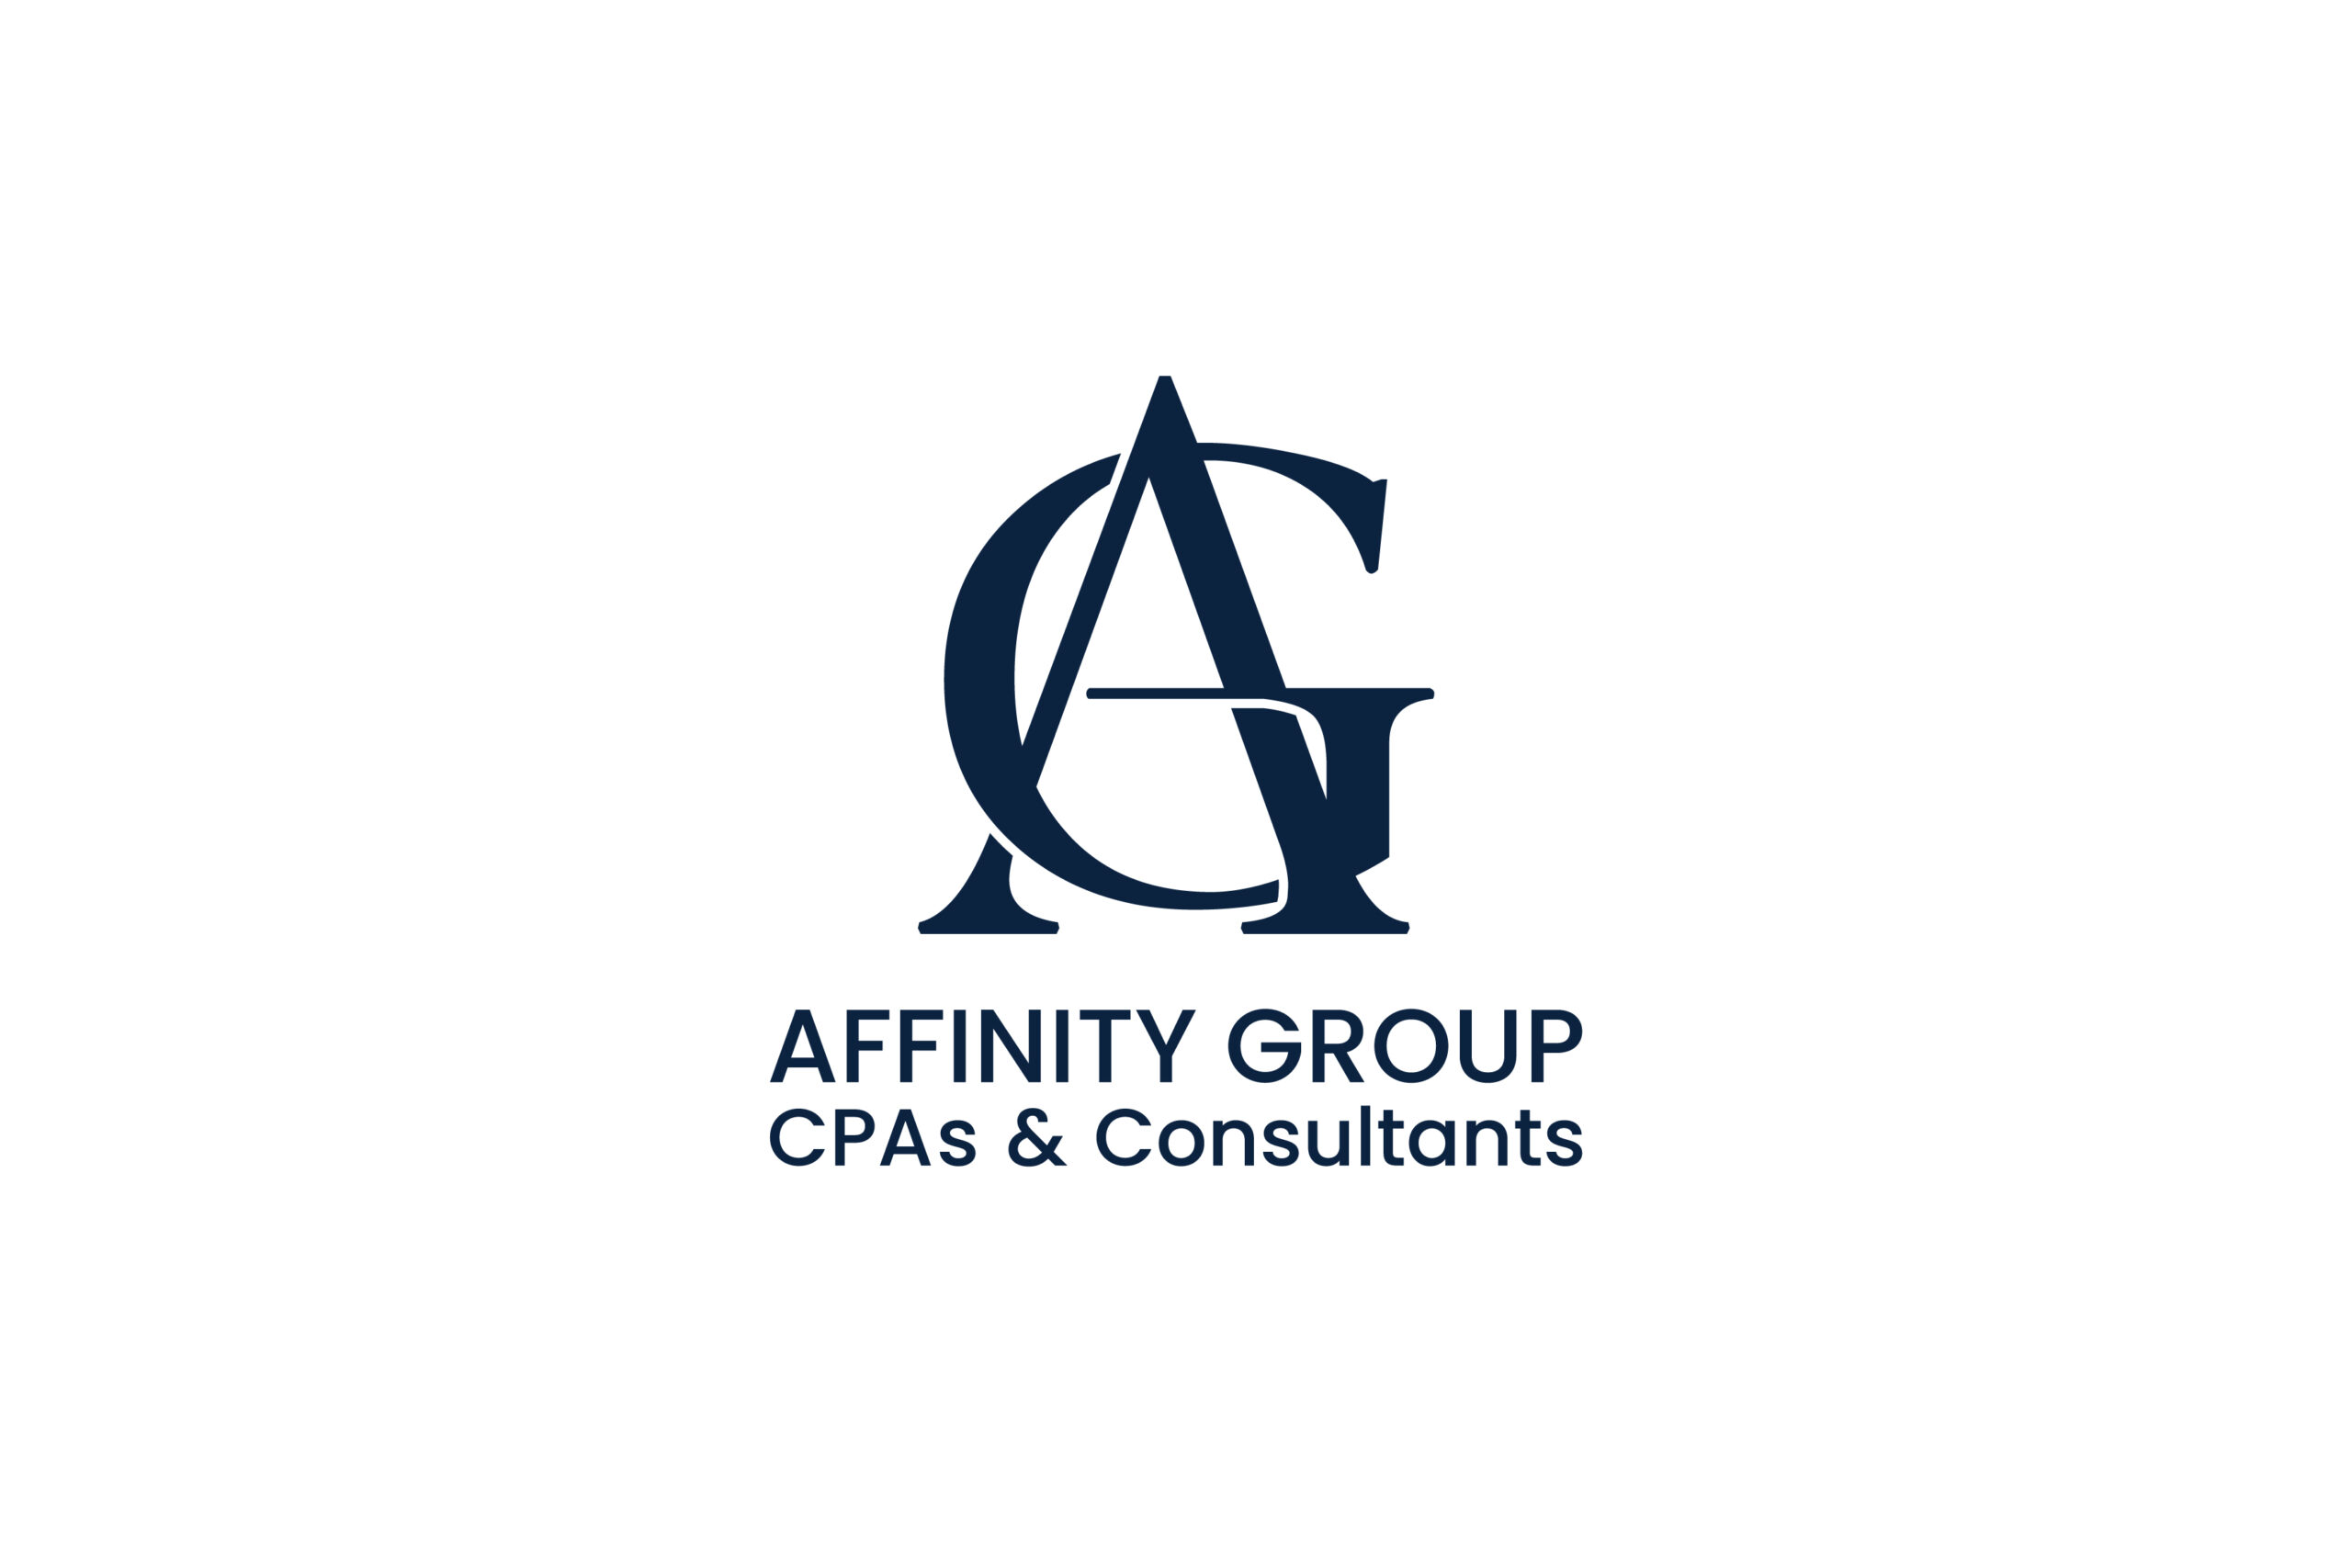 Affinity Group